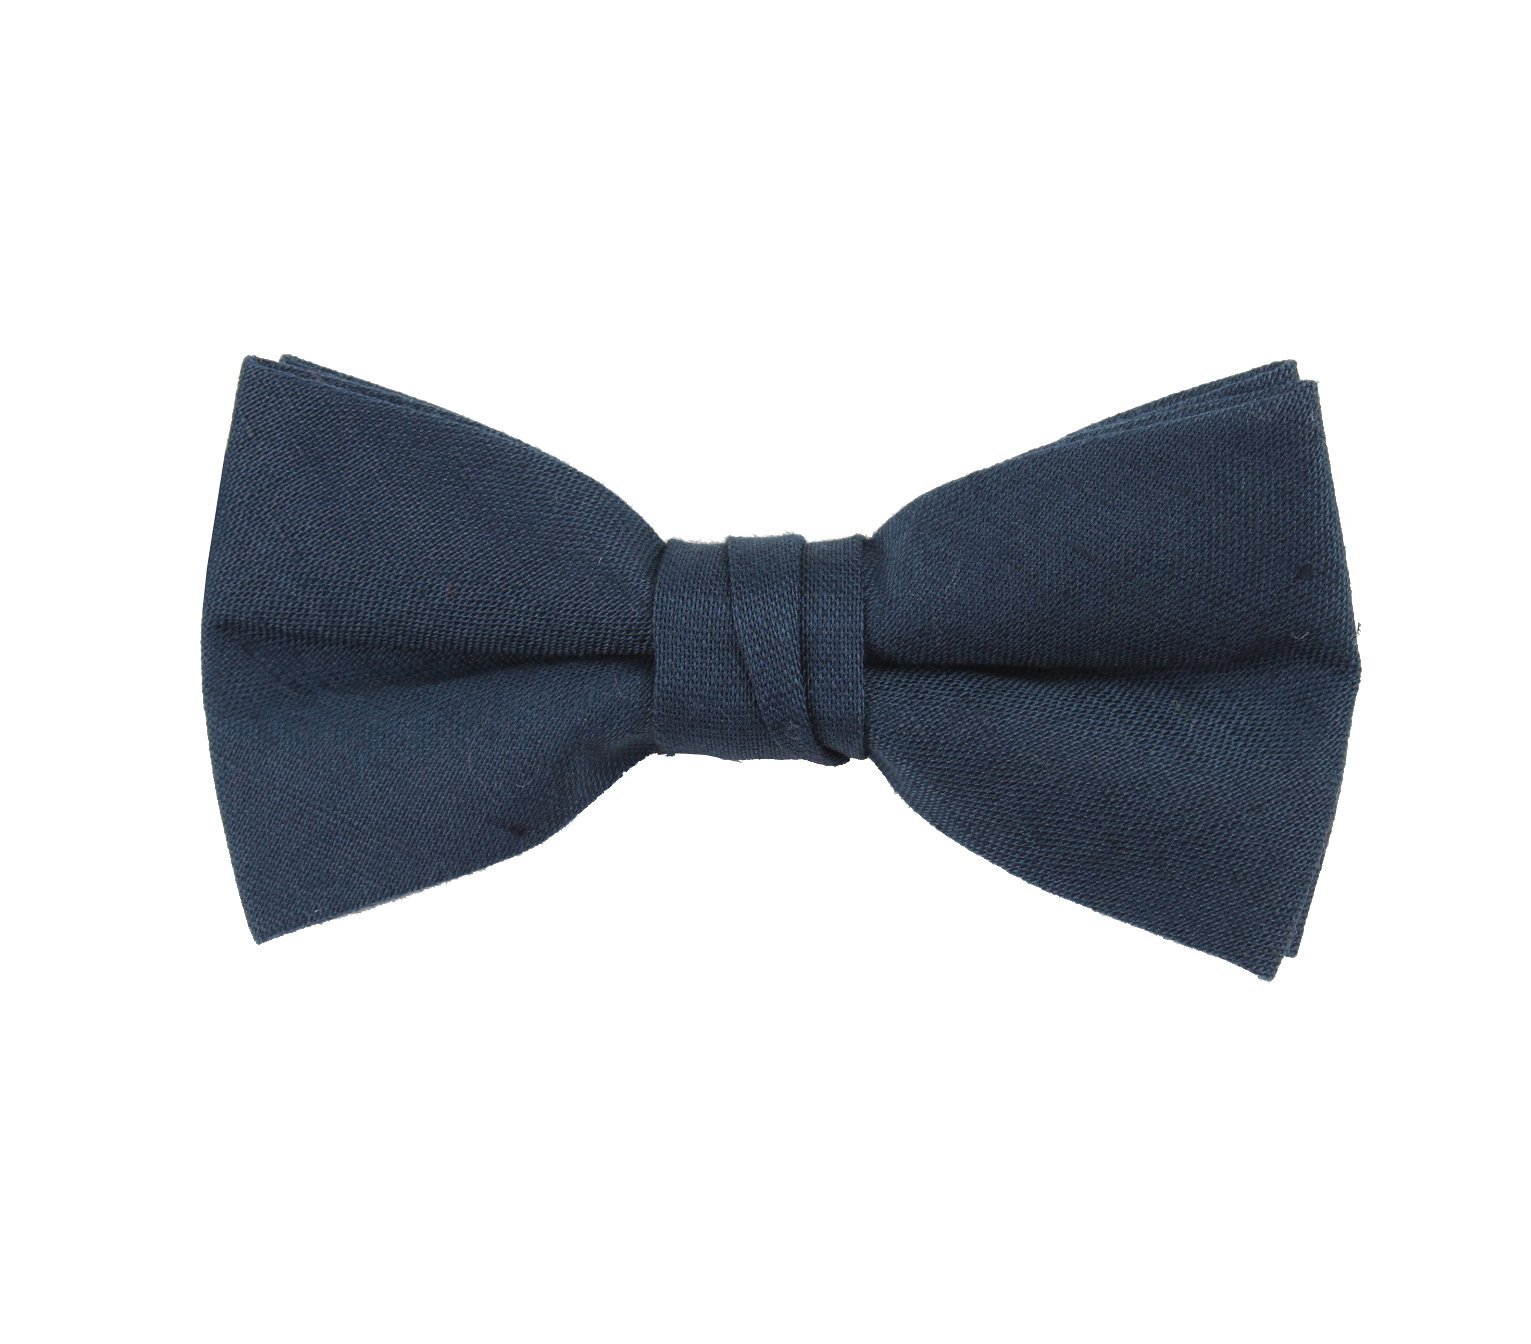 Born to Love Boys Kids Pre Tied Adjustable Bowtie Christmas Holiday Party Dress Up 4 Inches, navy linen by Born to Love